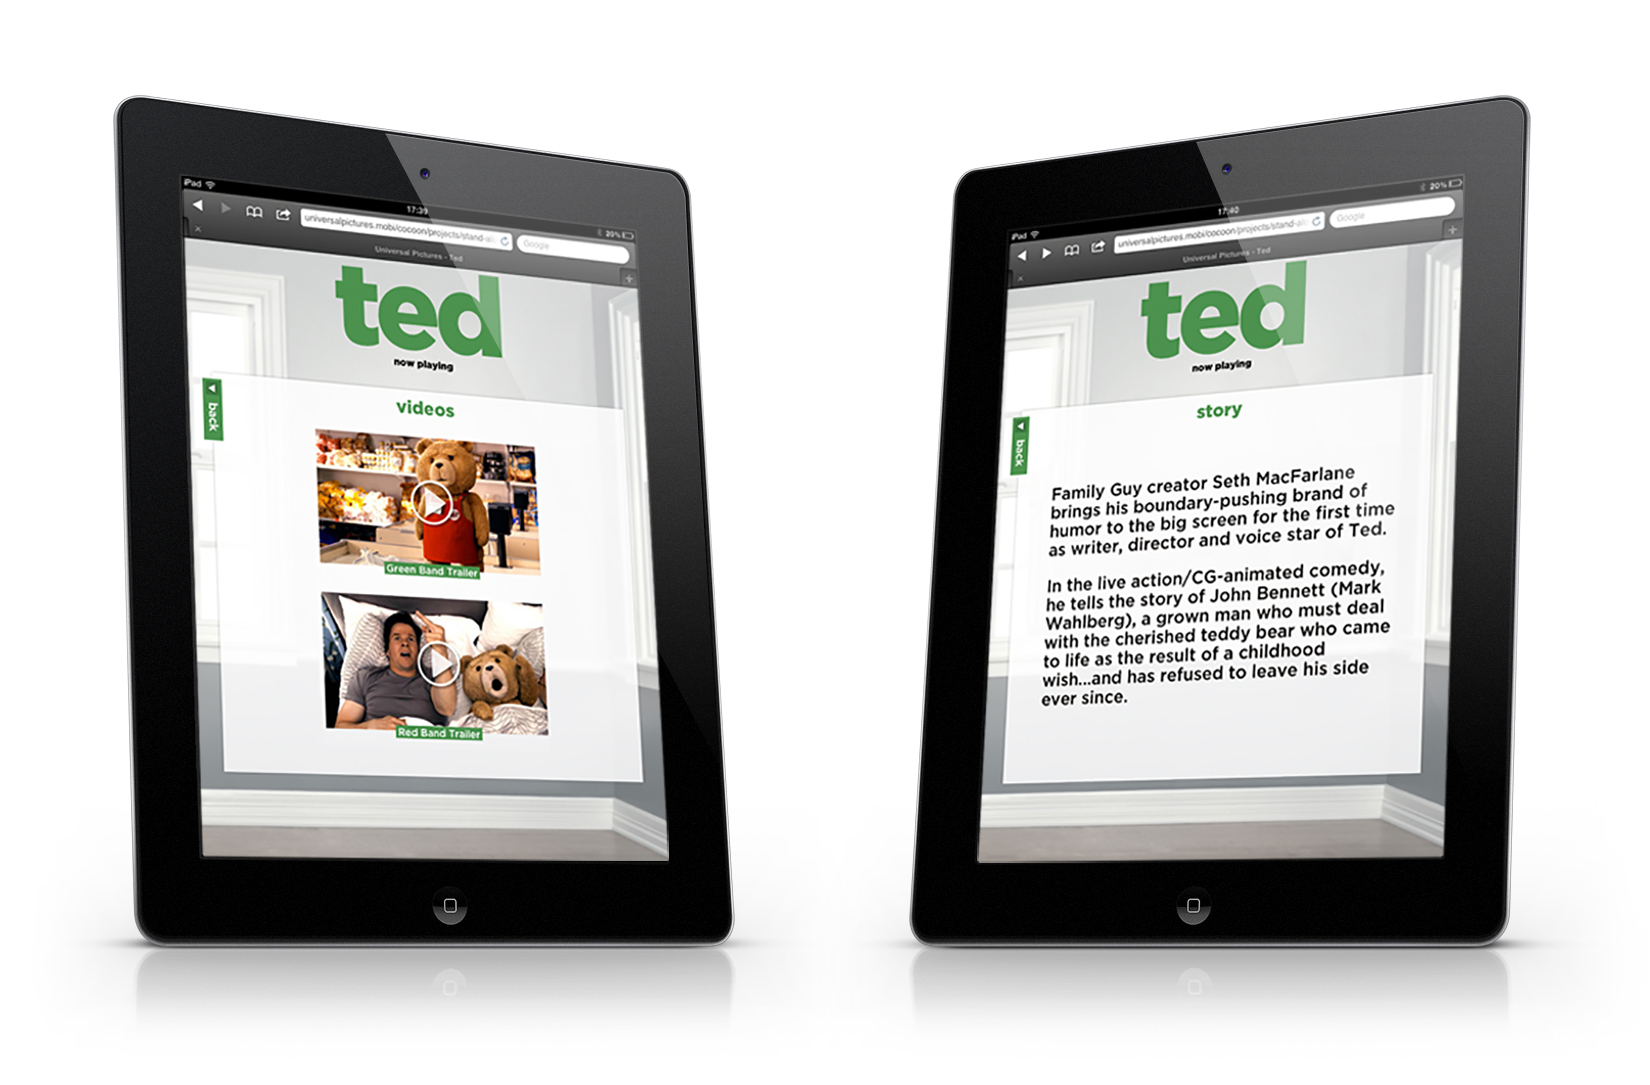 iPad: movie trailers and story screens.